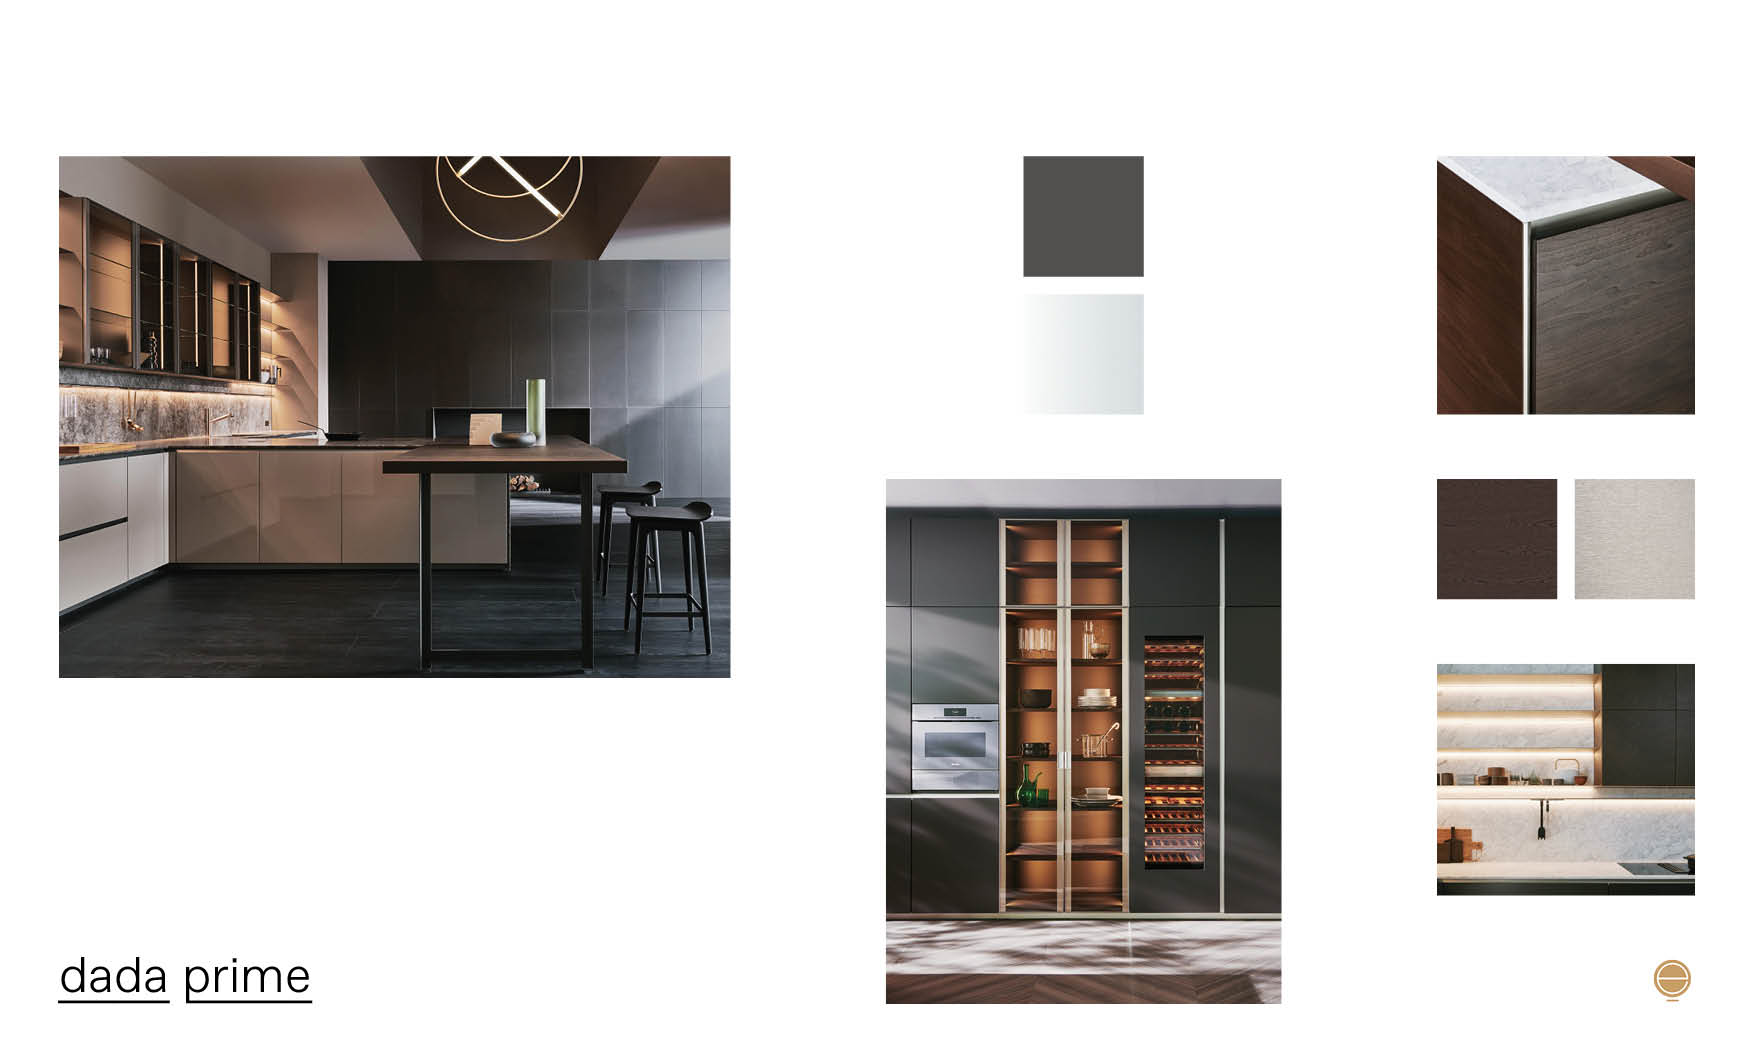 modern Italian kitchen design and dada prime product